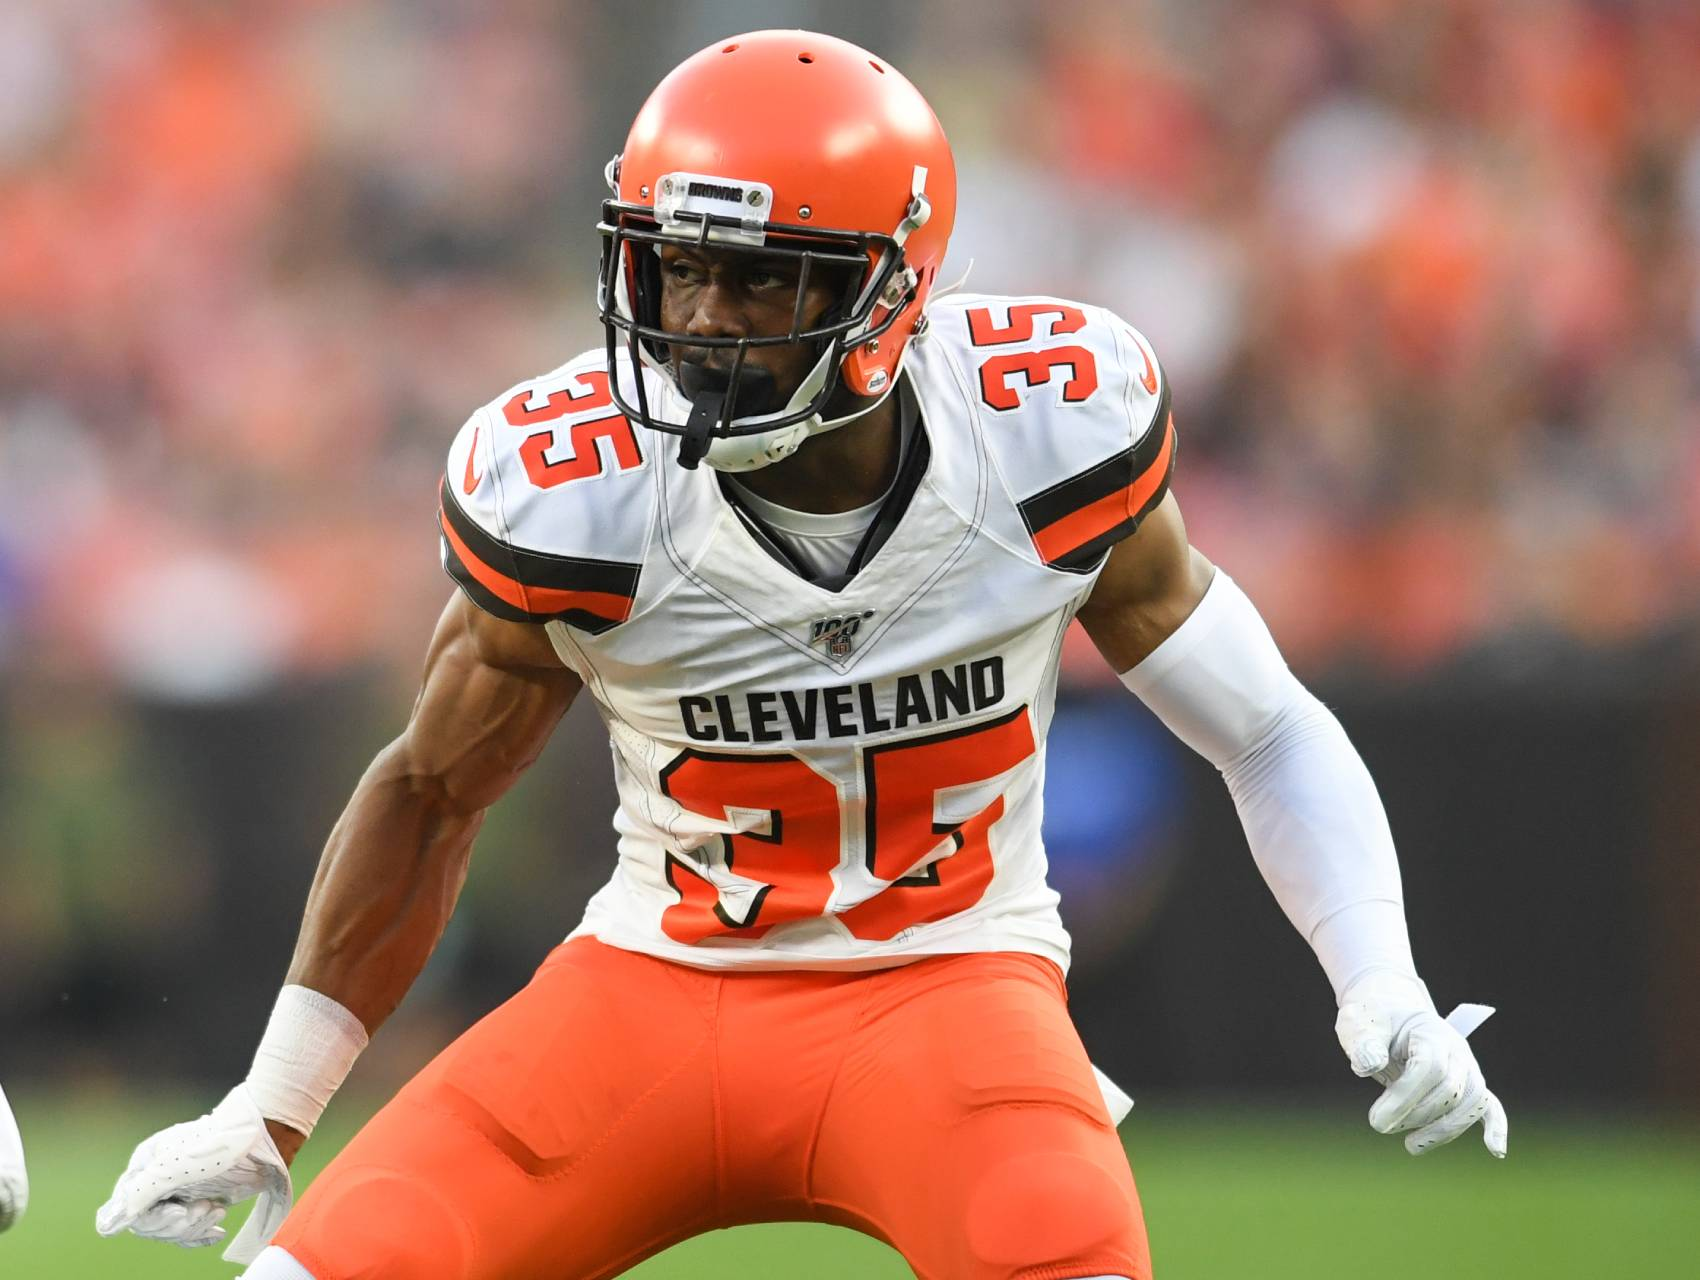 The Cleveland Browns cut safety Jermaine Whitehead in 2019 after his racist Twitter rants.